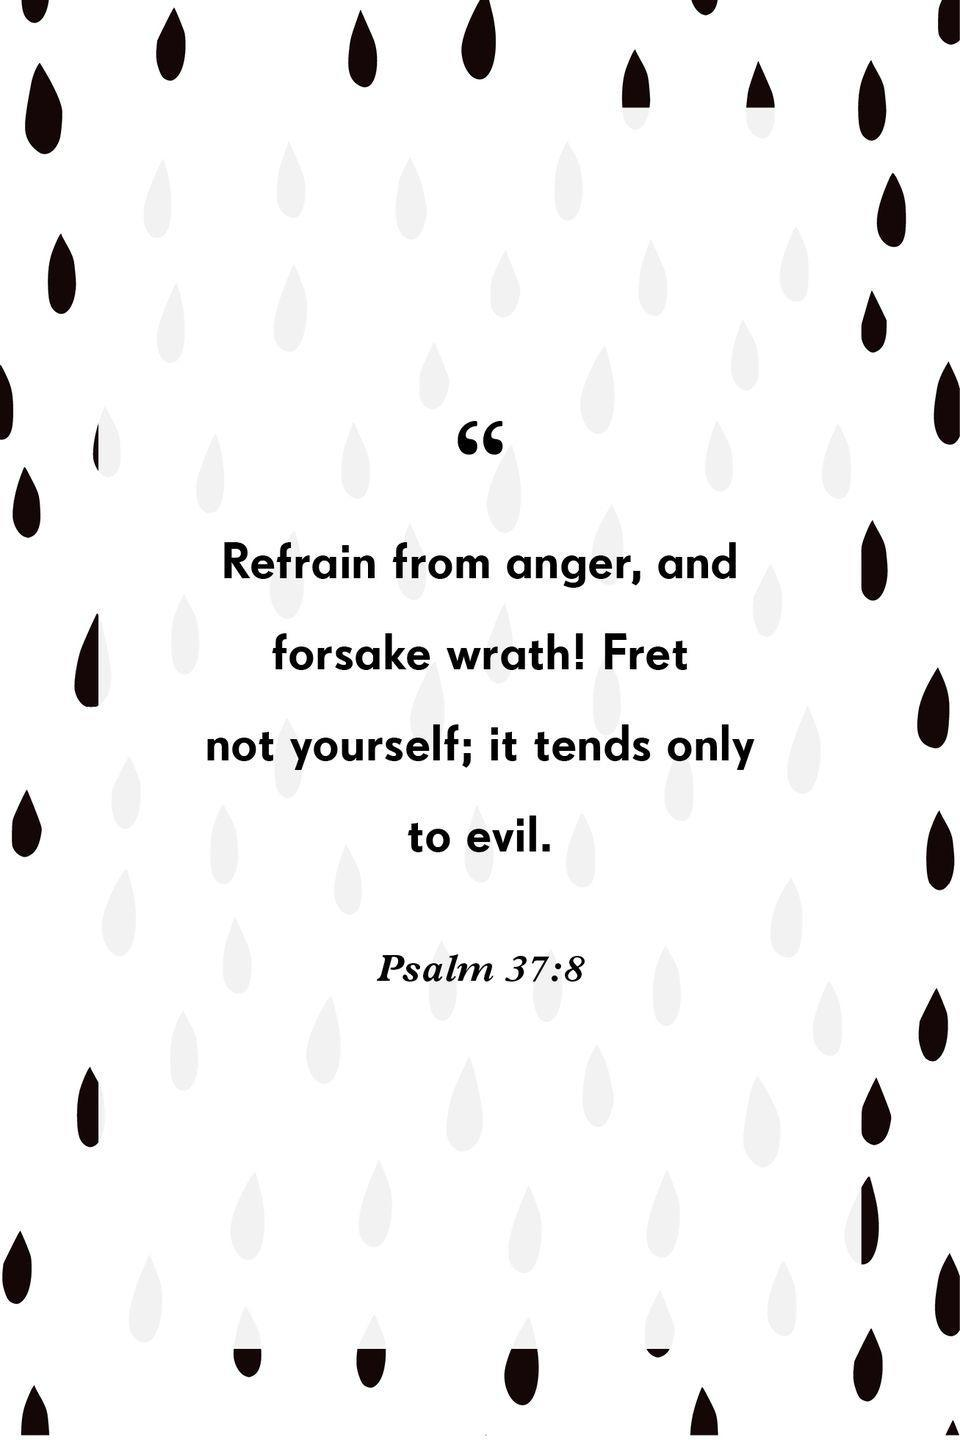 """<p>""""Refrain from anger, and forsake wrath! Fret not yourself; it tends only to evil.""""</p>"""